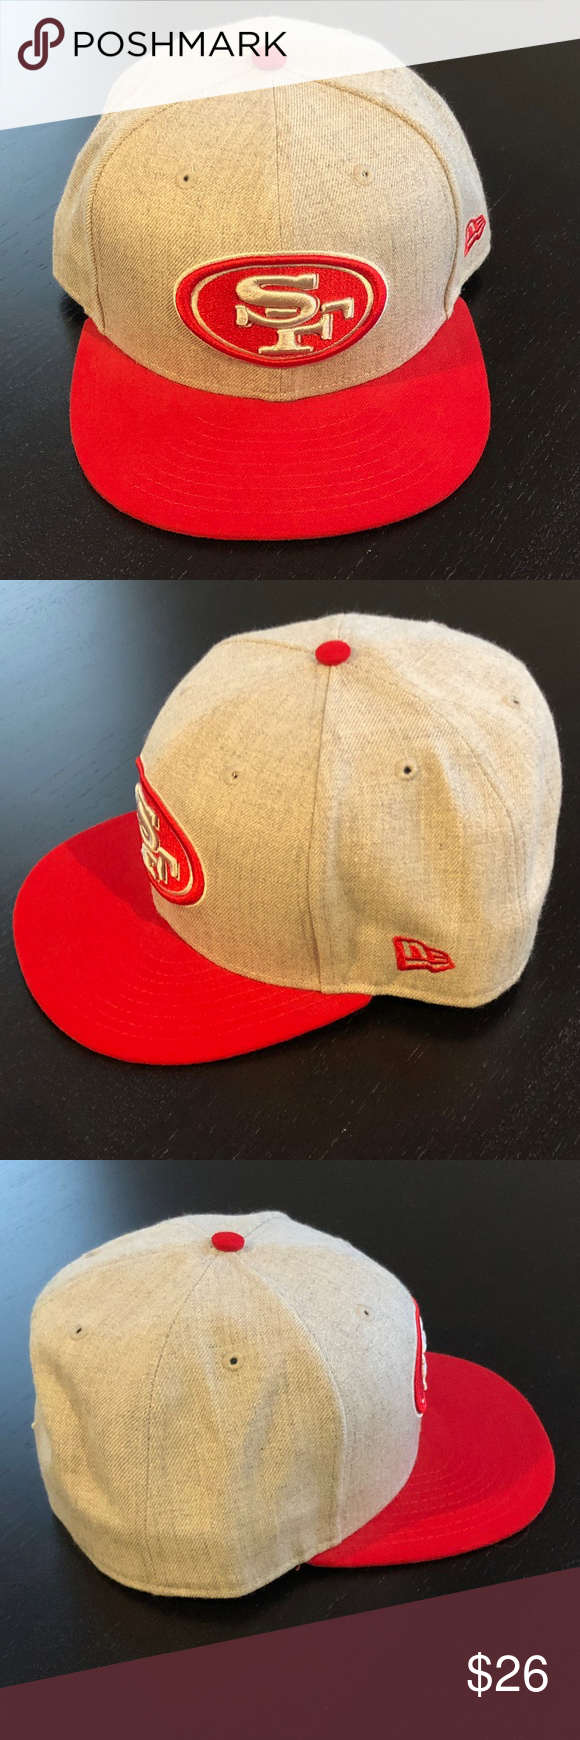 timeless design fac21 aab93 San Francisco 49ers New Era 59Fifty Fitted Hat San Francisco 49ers New Era  59Fifty Fitted Baseball